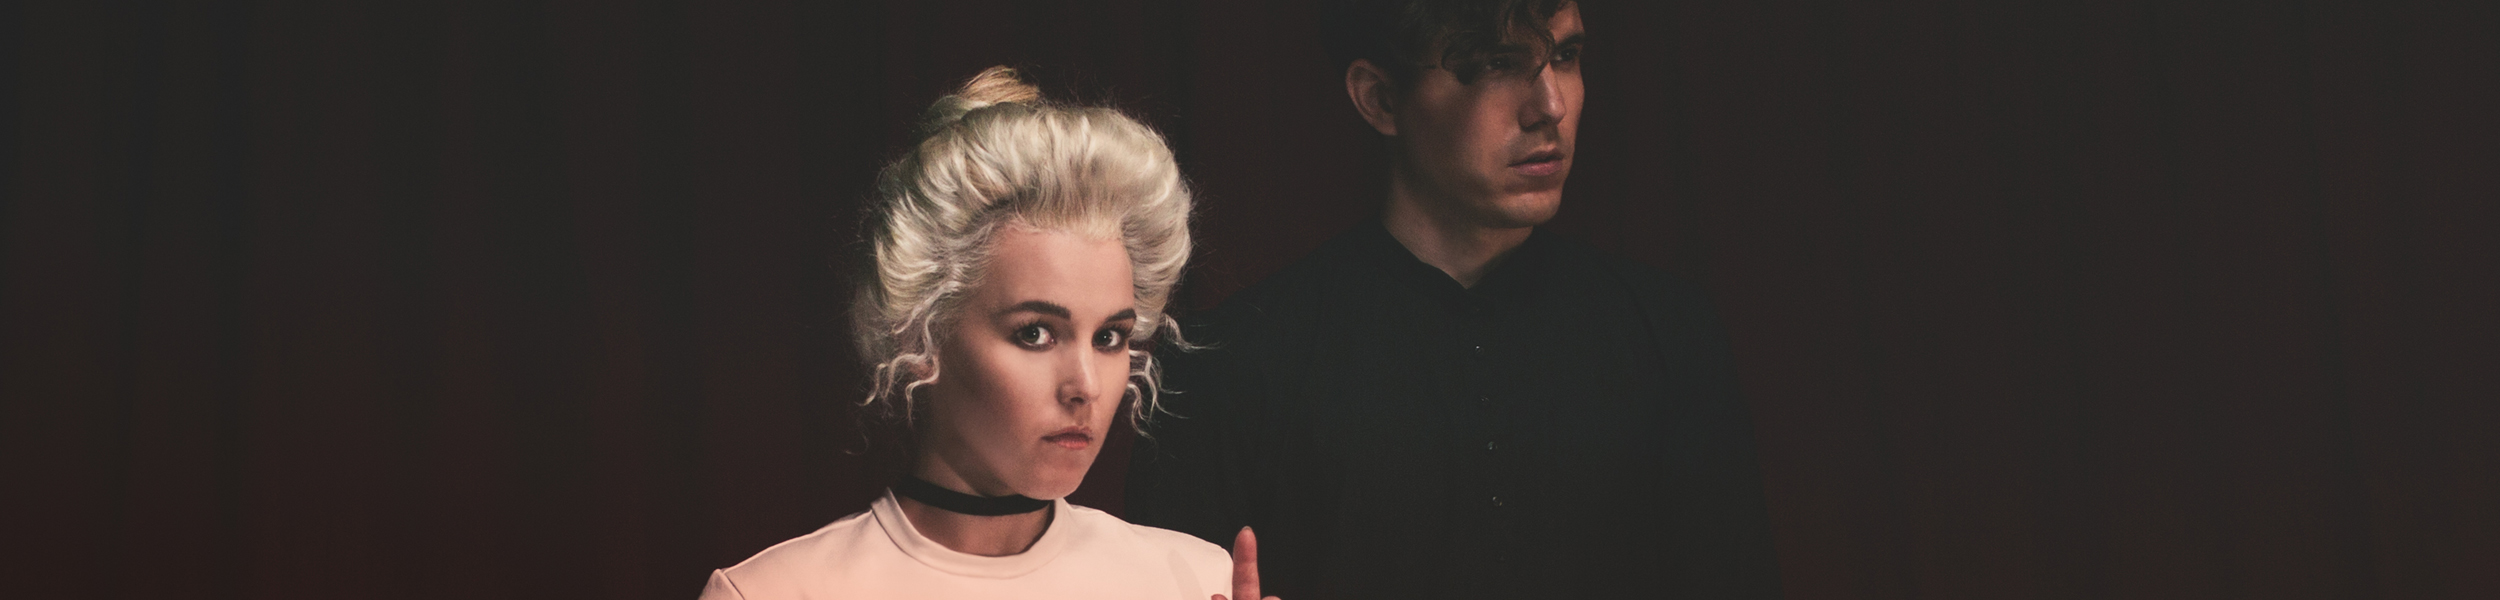 Purity Ring - 4AD Announces Purity Ring Album, Shrines